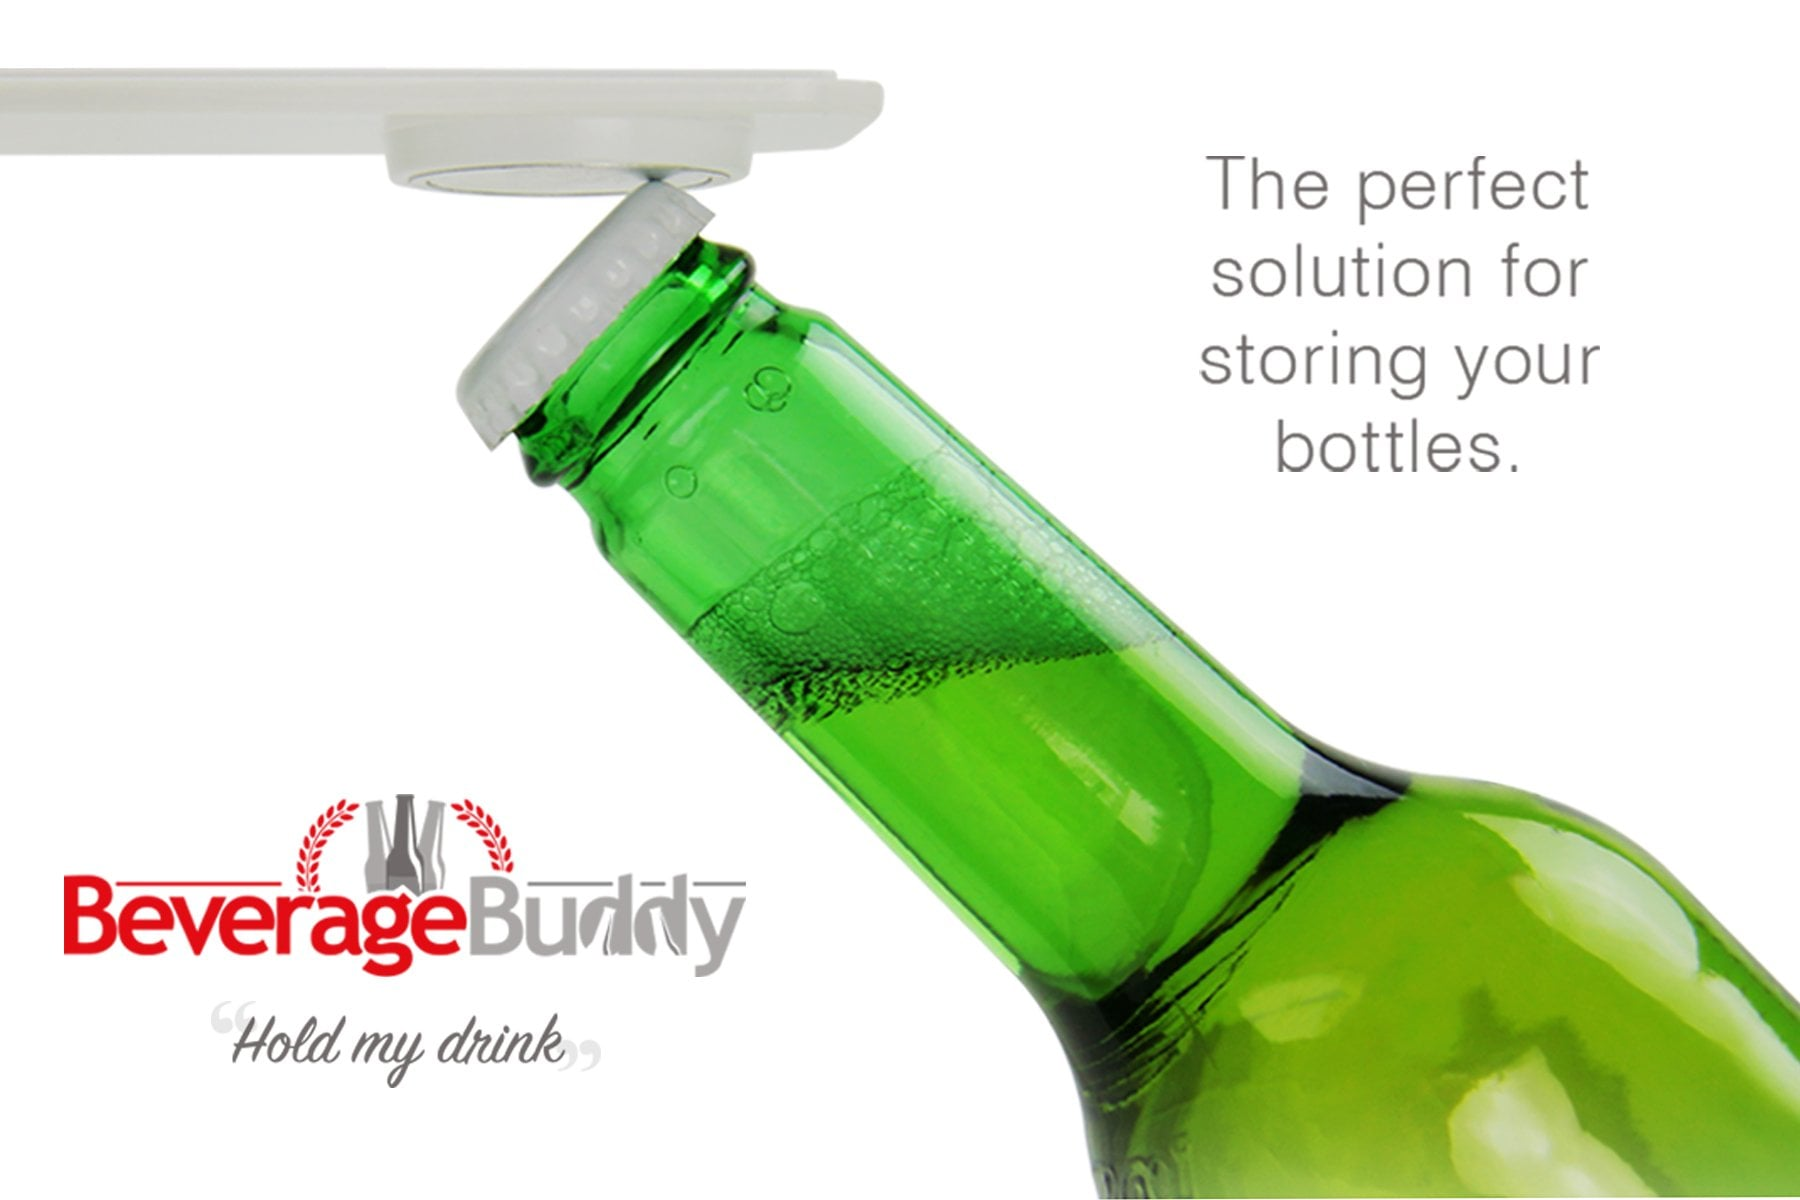 Beverage Buddy, the magnetic drinks holder - perfect solution for storing your bottles in fridge